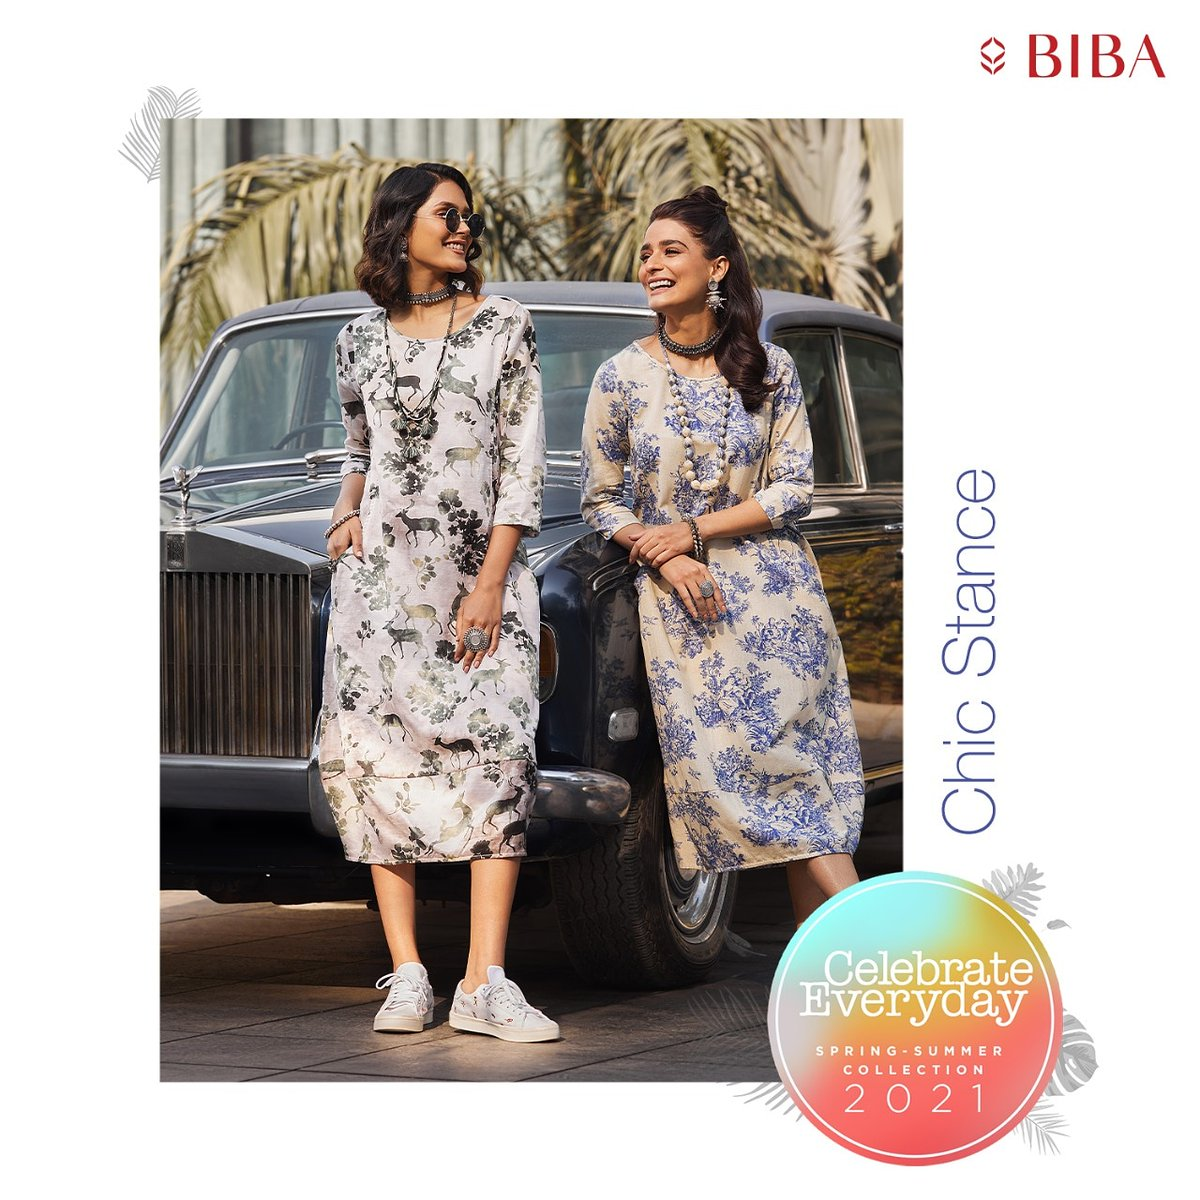 Weekends here, it's time to bring your chic on! ✨ Shop these fresh looks from our #ChicStance range: https://t.co/WXF6oSW7Yy  #SpringSummerCollection #OOTD #FridayFeeling #Weekend https://t.co/CgoURQgoiS